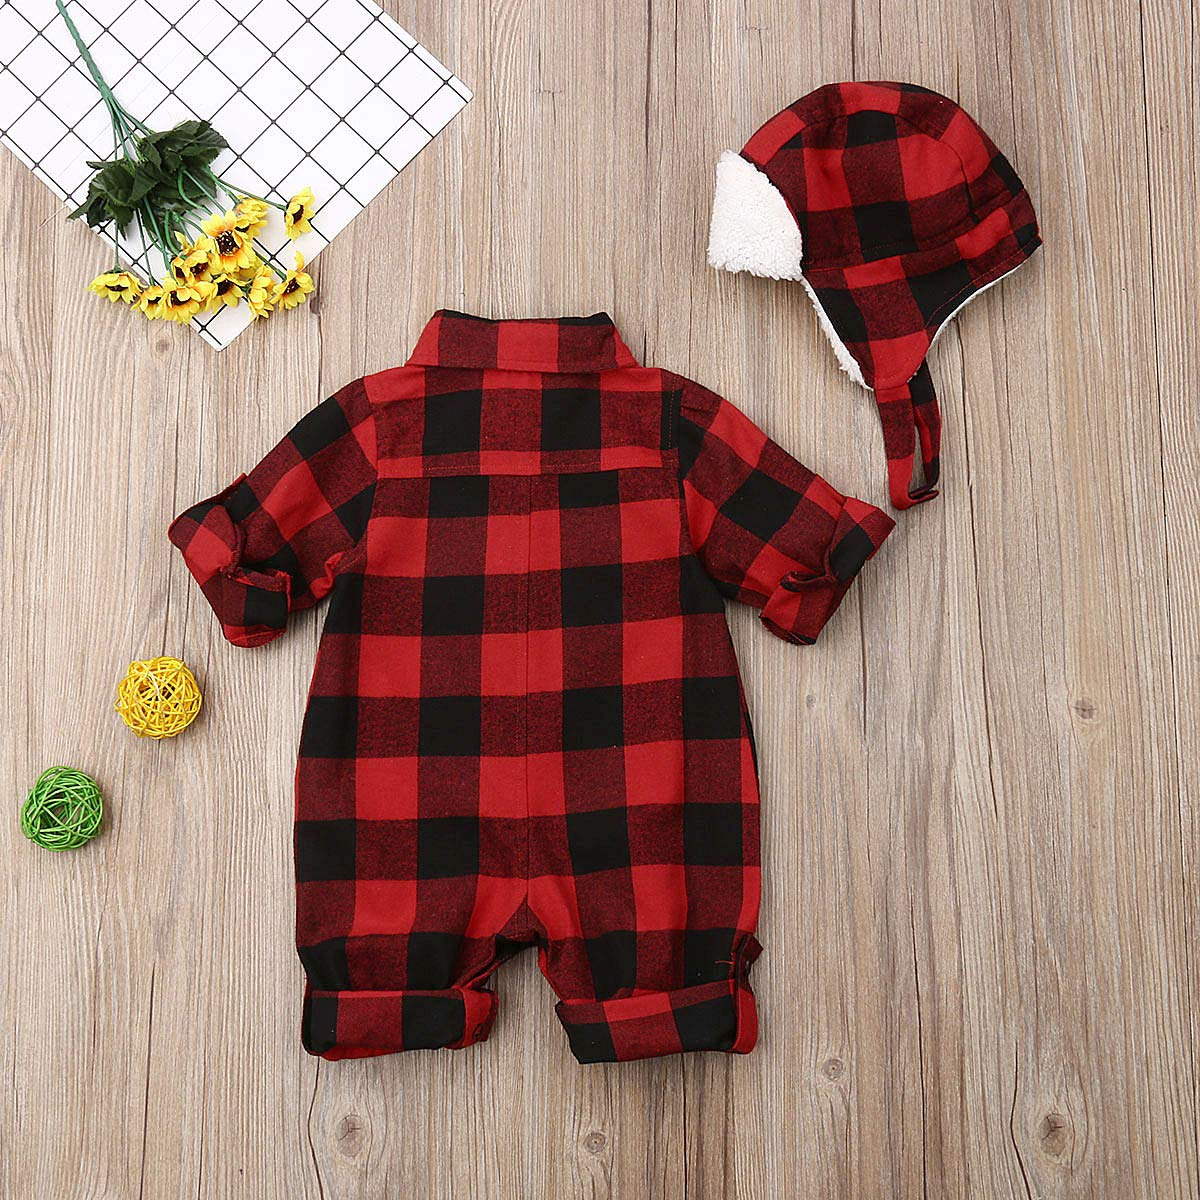 Unisex Infant Baby Clothes Boy Girl Plaid Overalls Jumpsuit Earflap Winter Hat Cap